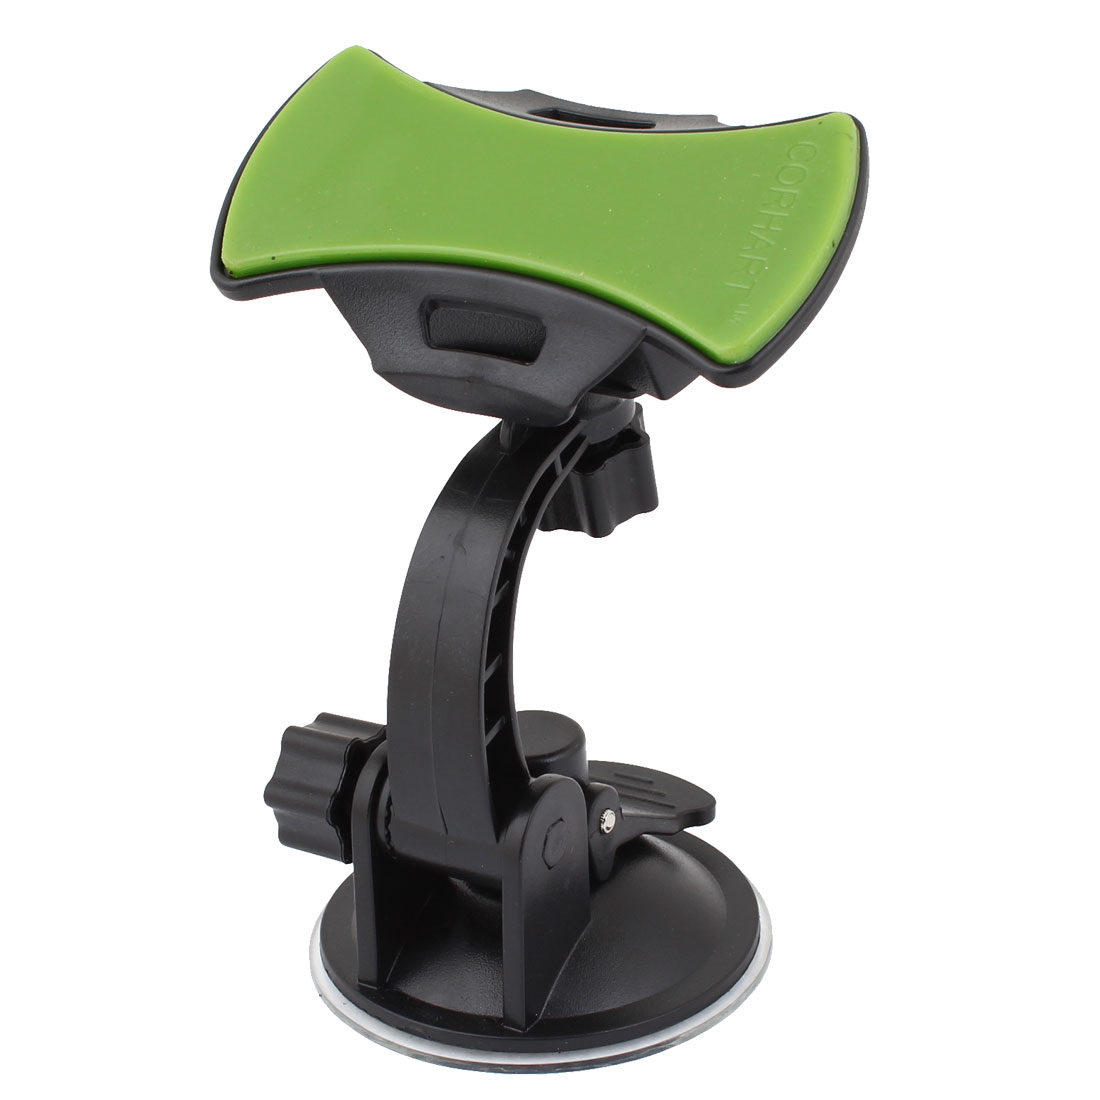 Black Adjustable Angle Dashboard Suction Mounted Phone Holder for Car